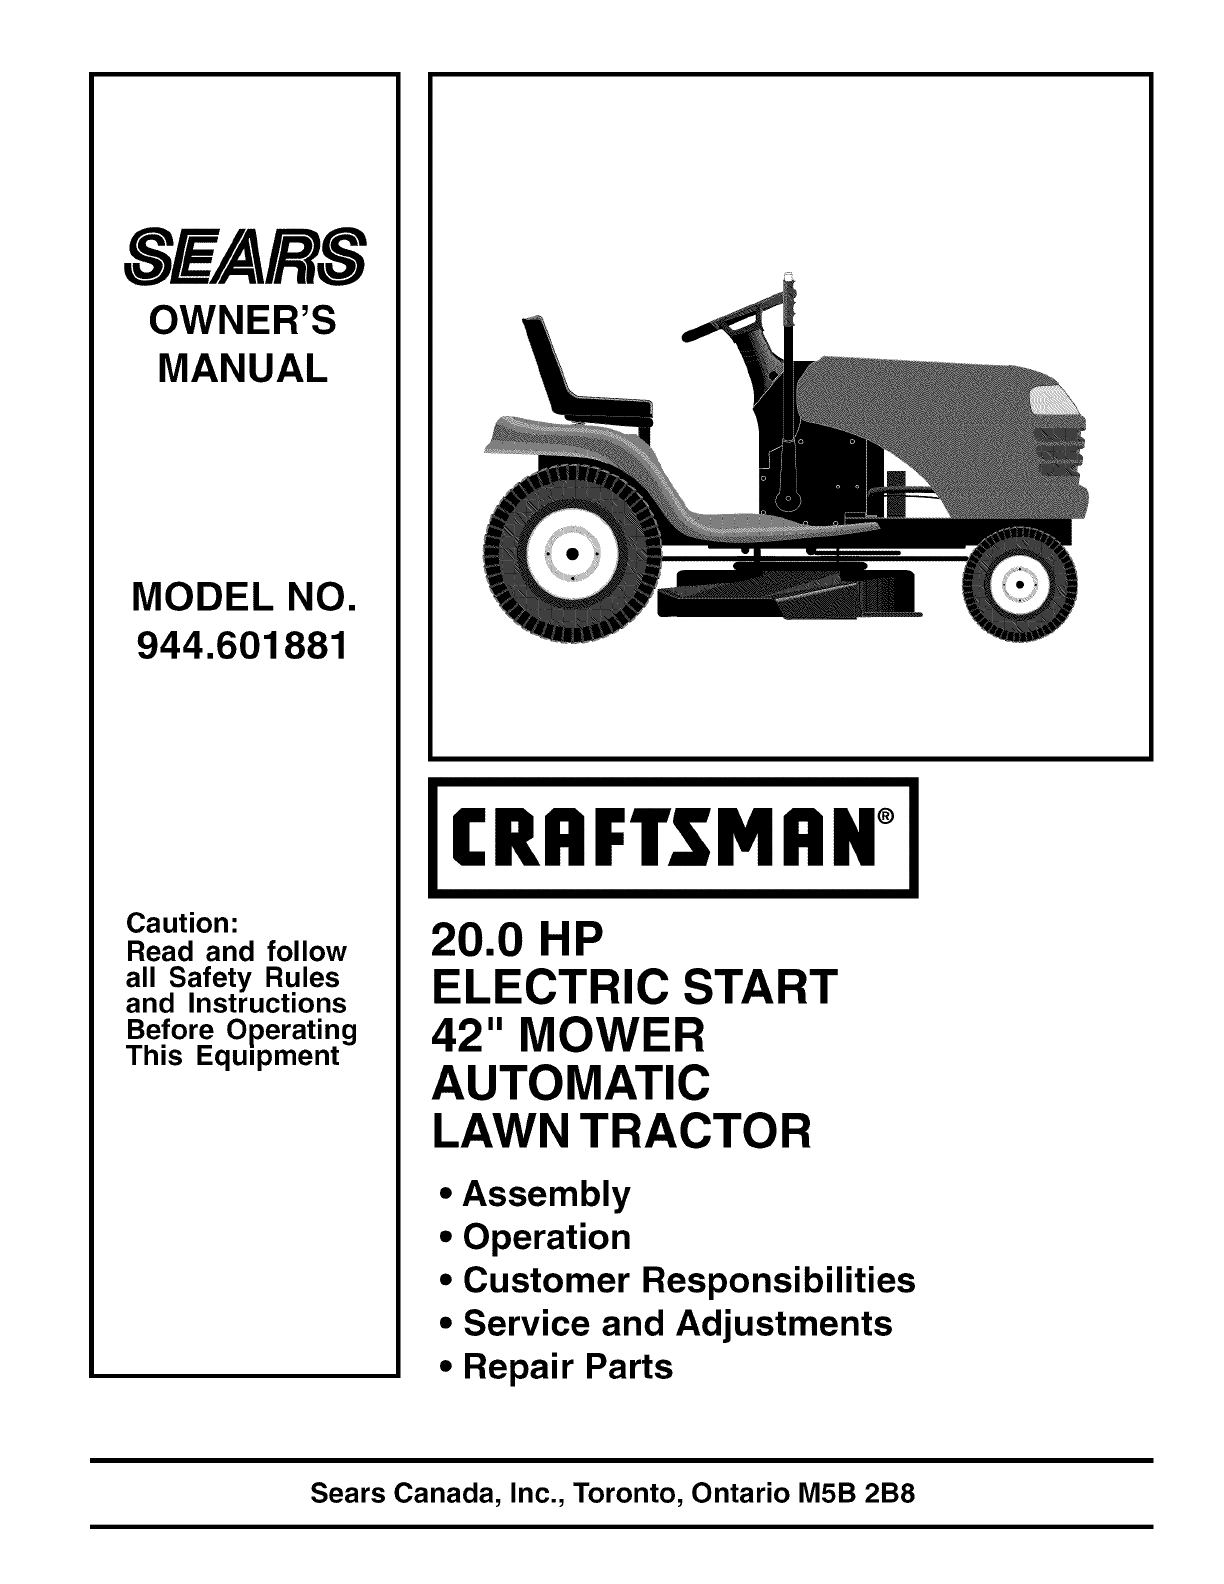 Craftsman 944601881 User Manual Tractor Manuals And Guides 1103676l Lawn Mower Engine Diagram Furthermore Parts